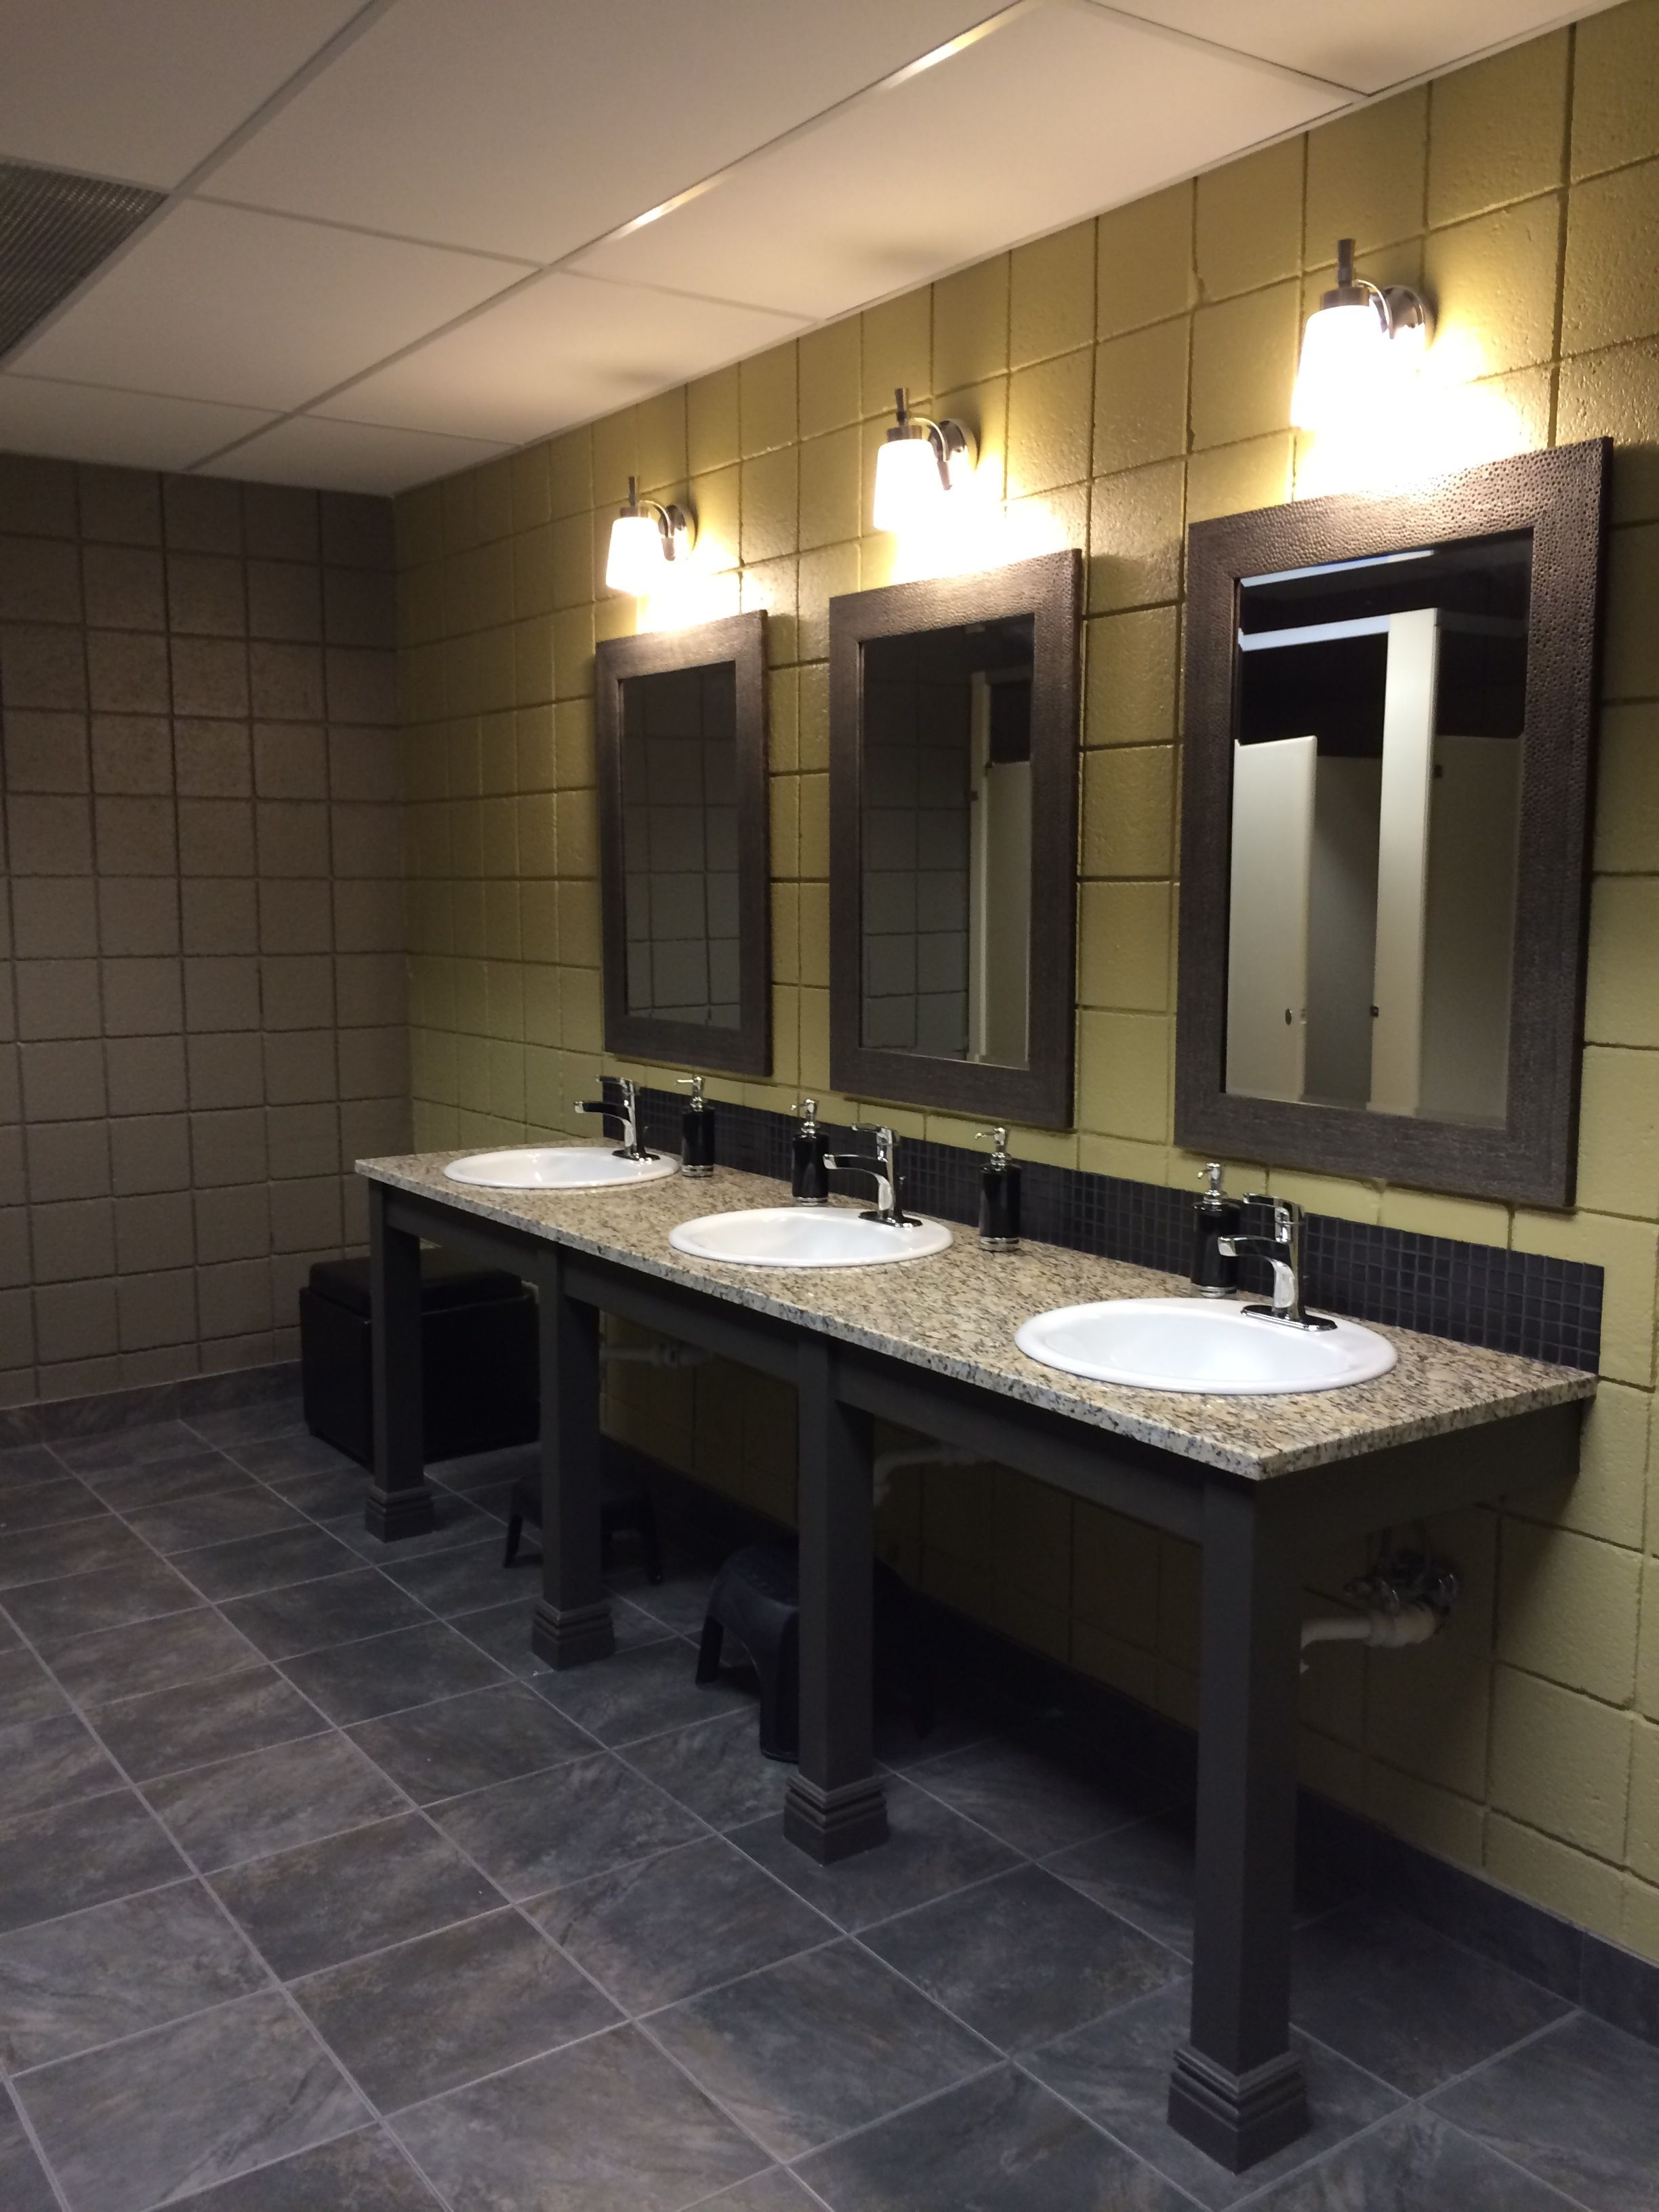 Men's Bathroom Design Church Men's Bathroom  Bathrooms  Pinterest  Churches Church